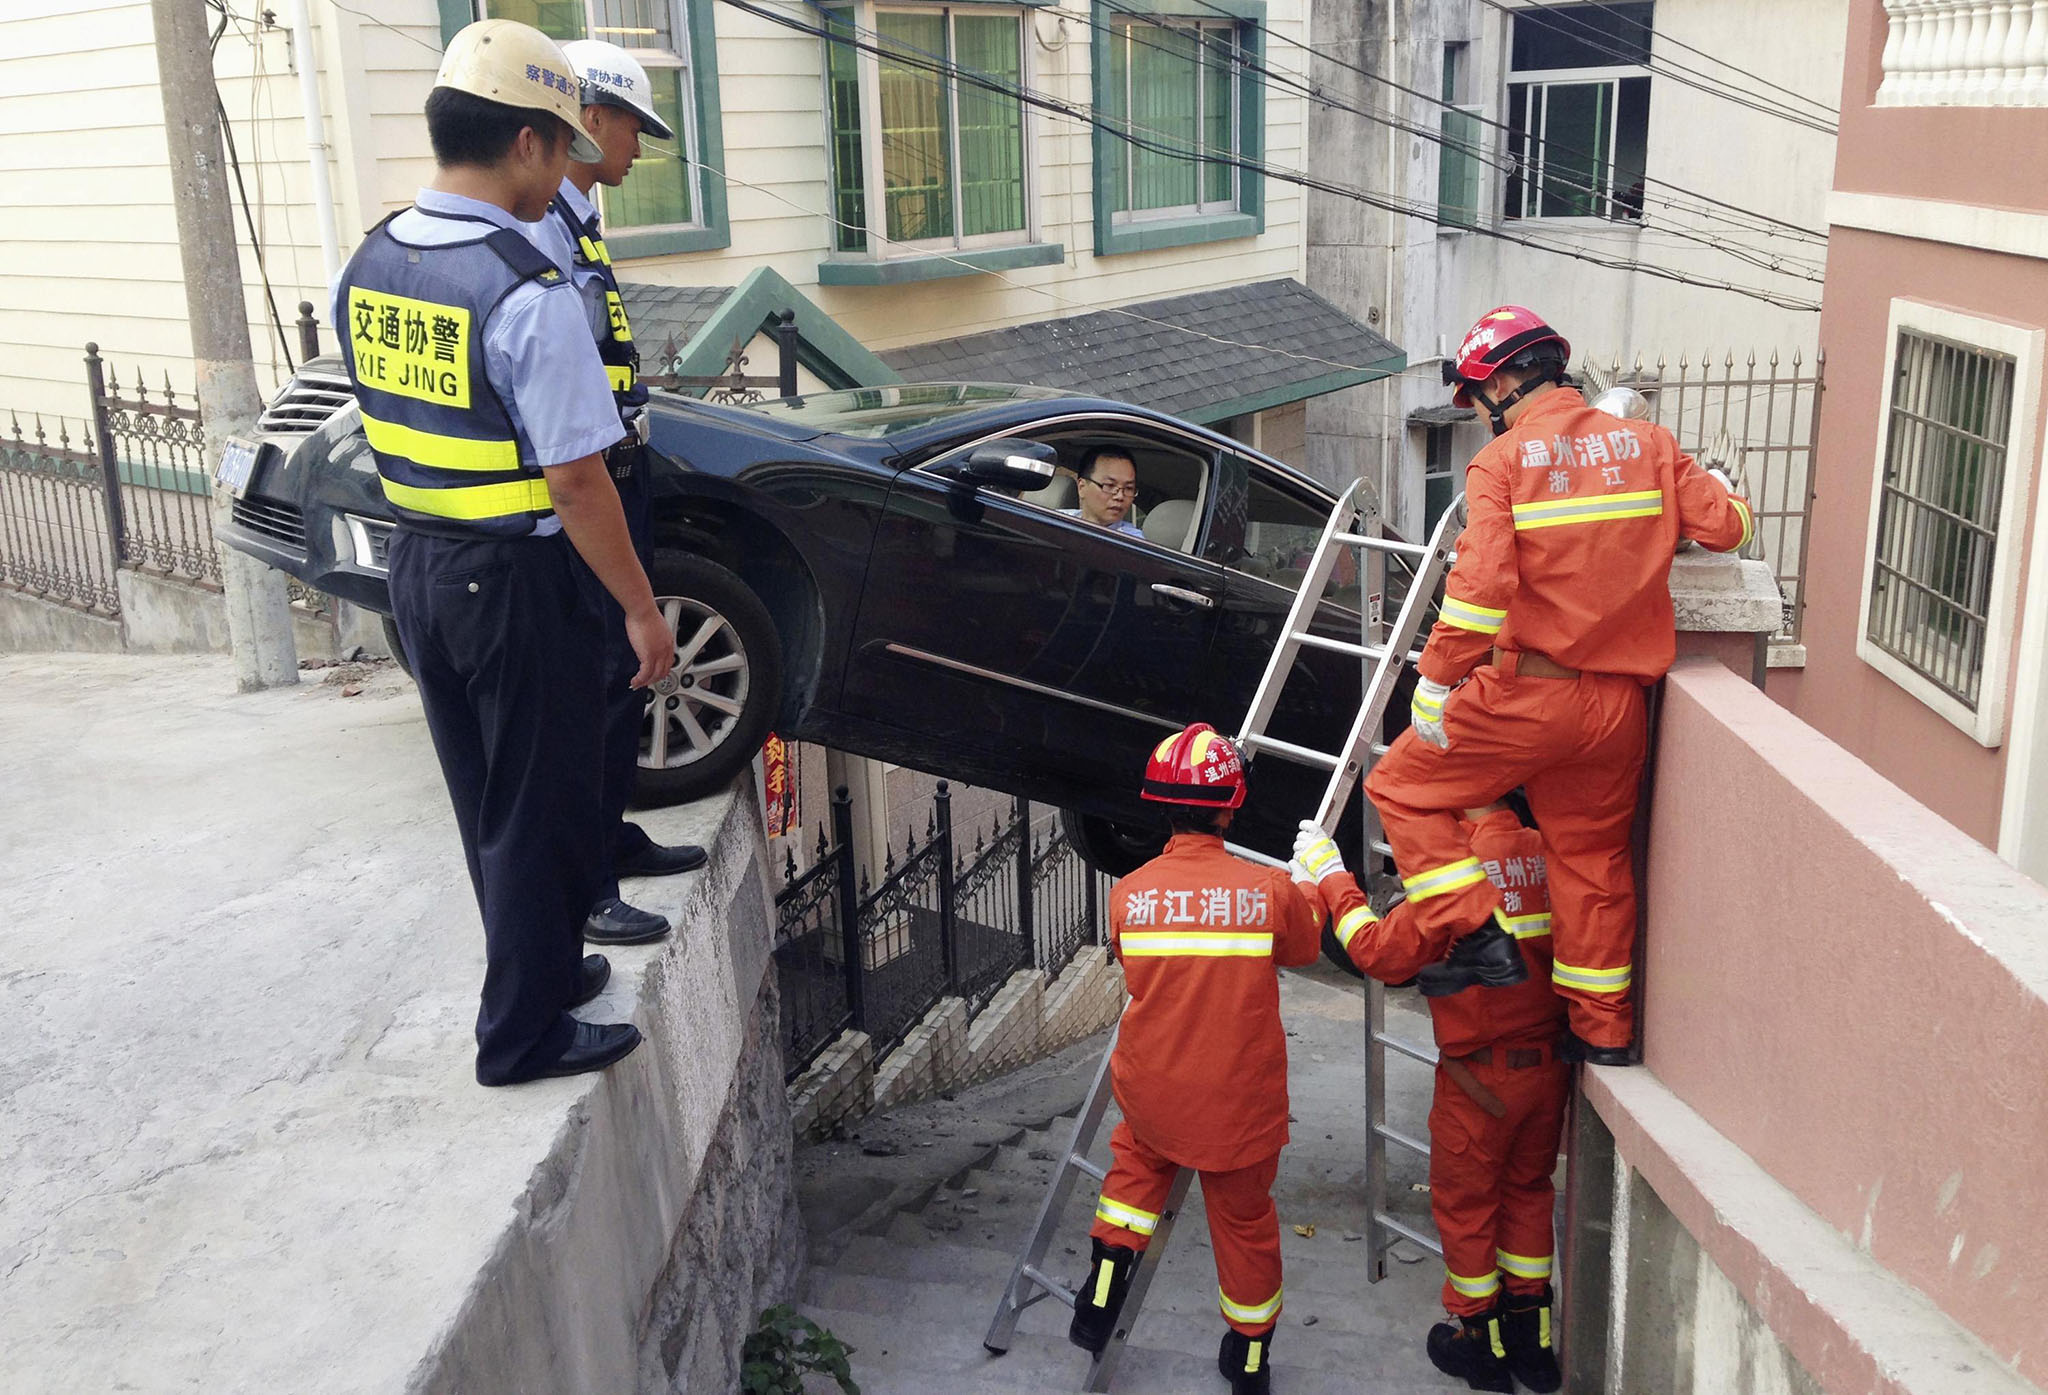 Rescue workers try to help a driver out of his car, after the vehicle was stuck over an alley in Wenzhou, Zhejiang province